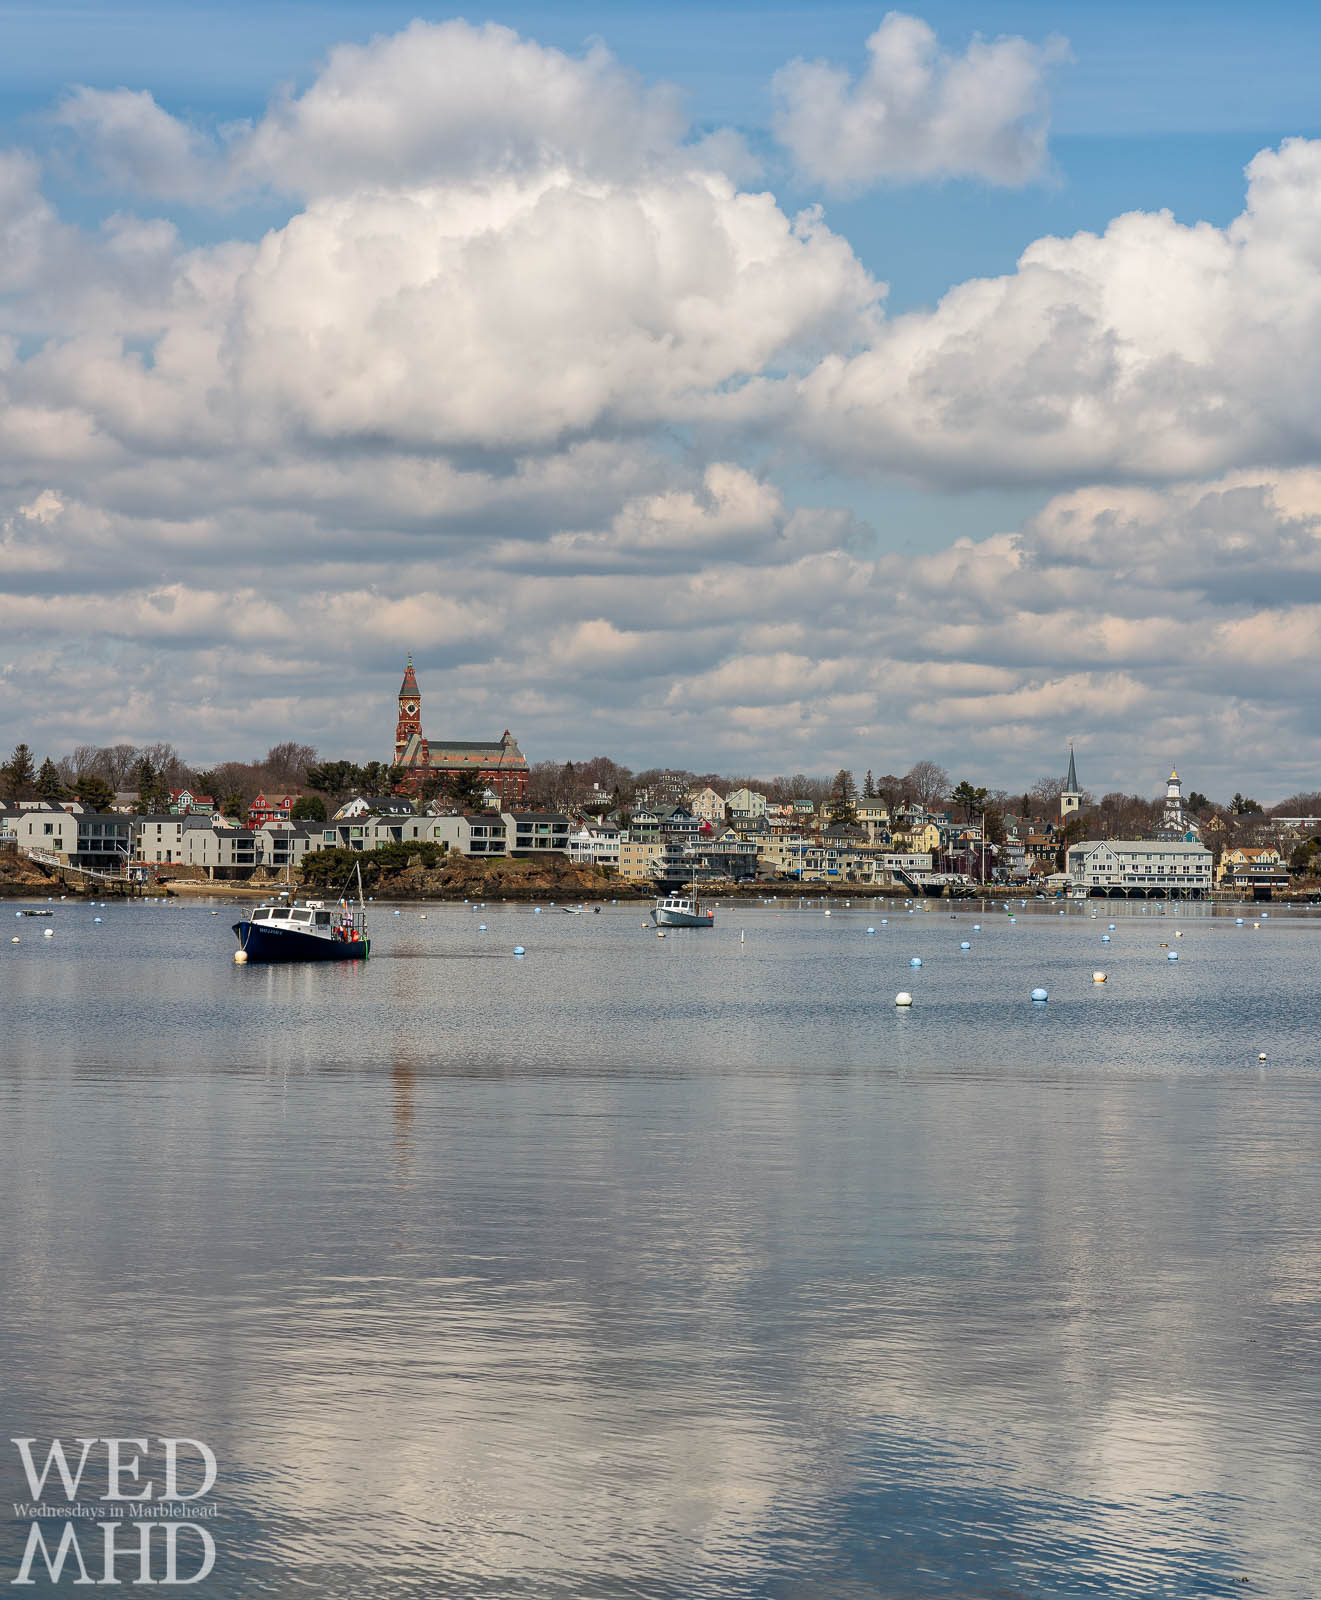 Clouds build and reflect in the still waters of Marblehead Harbor at Noon on an mid-April day